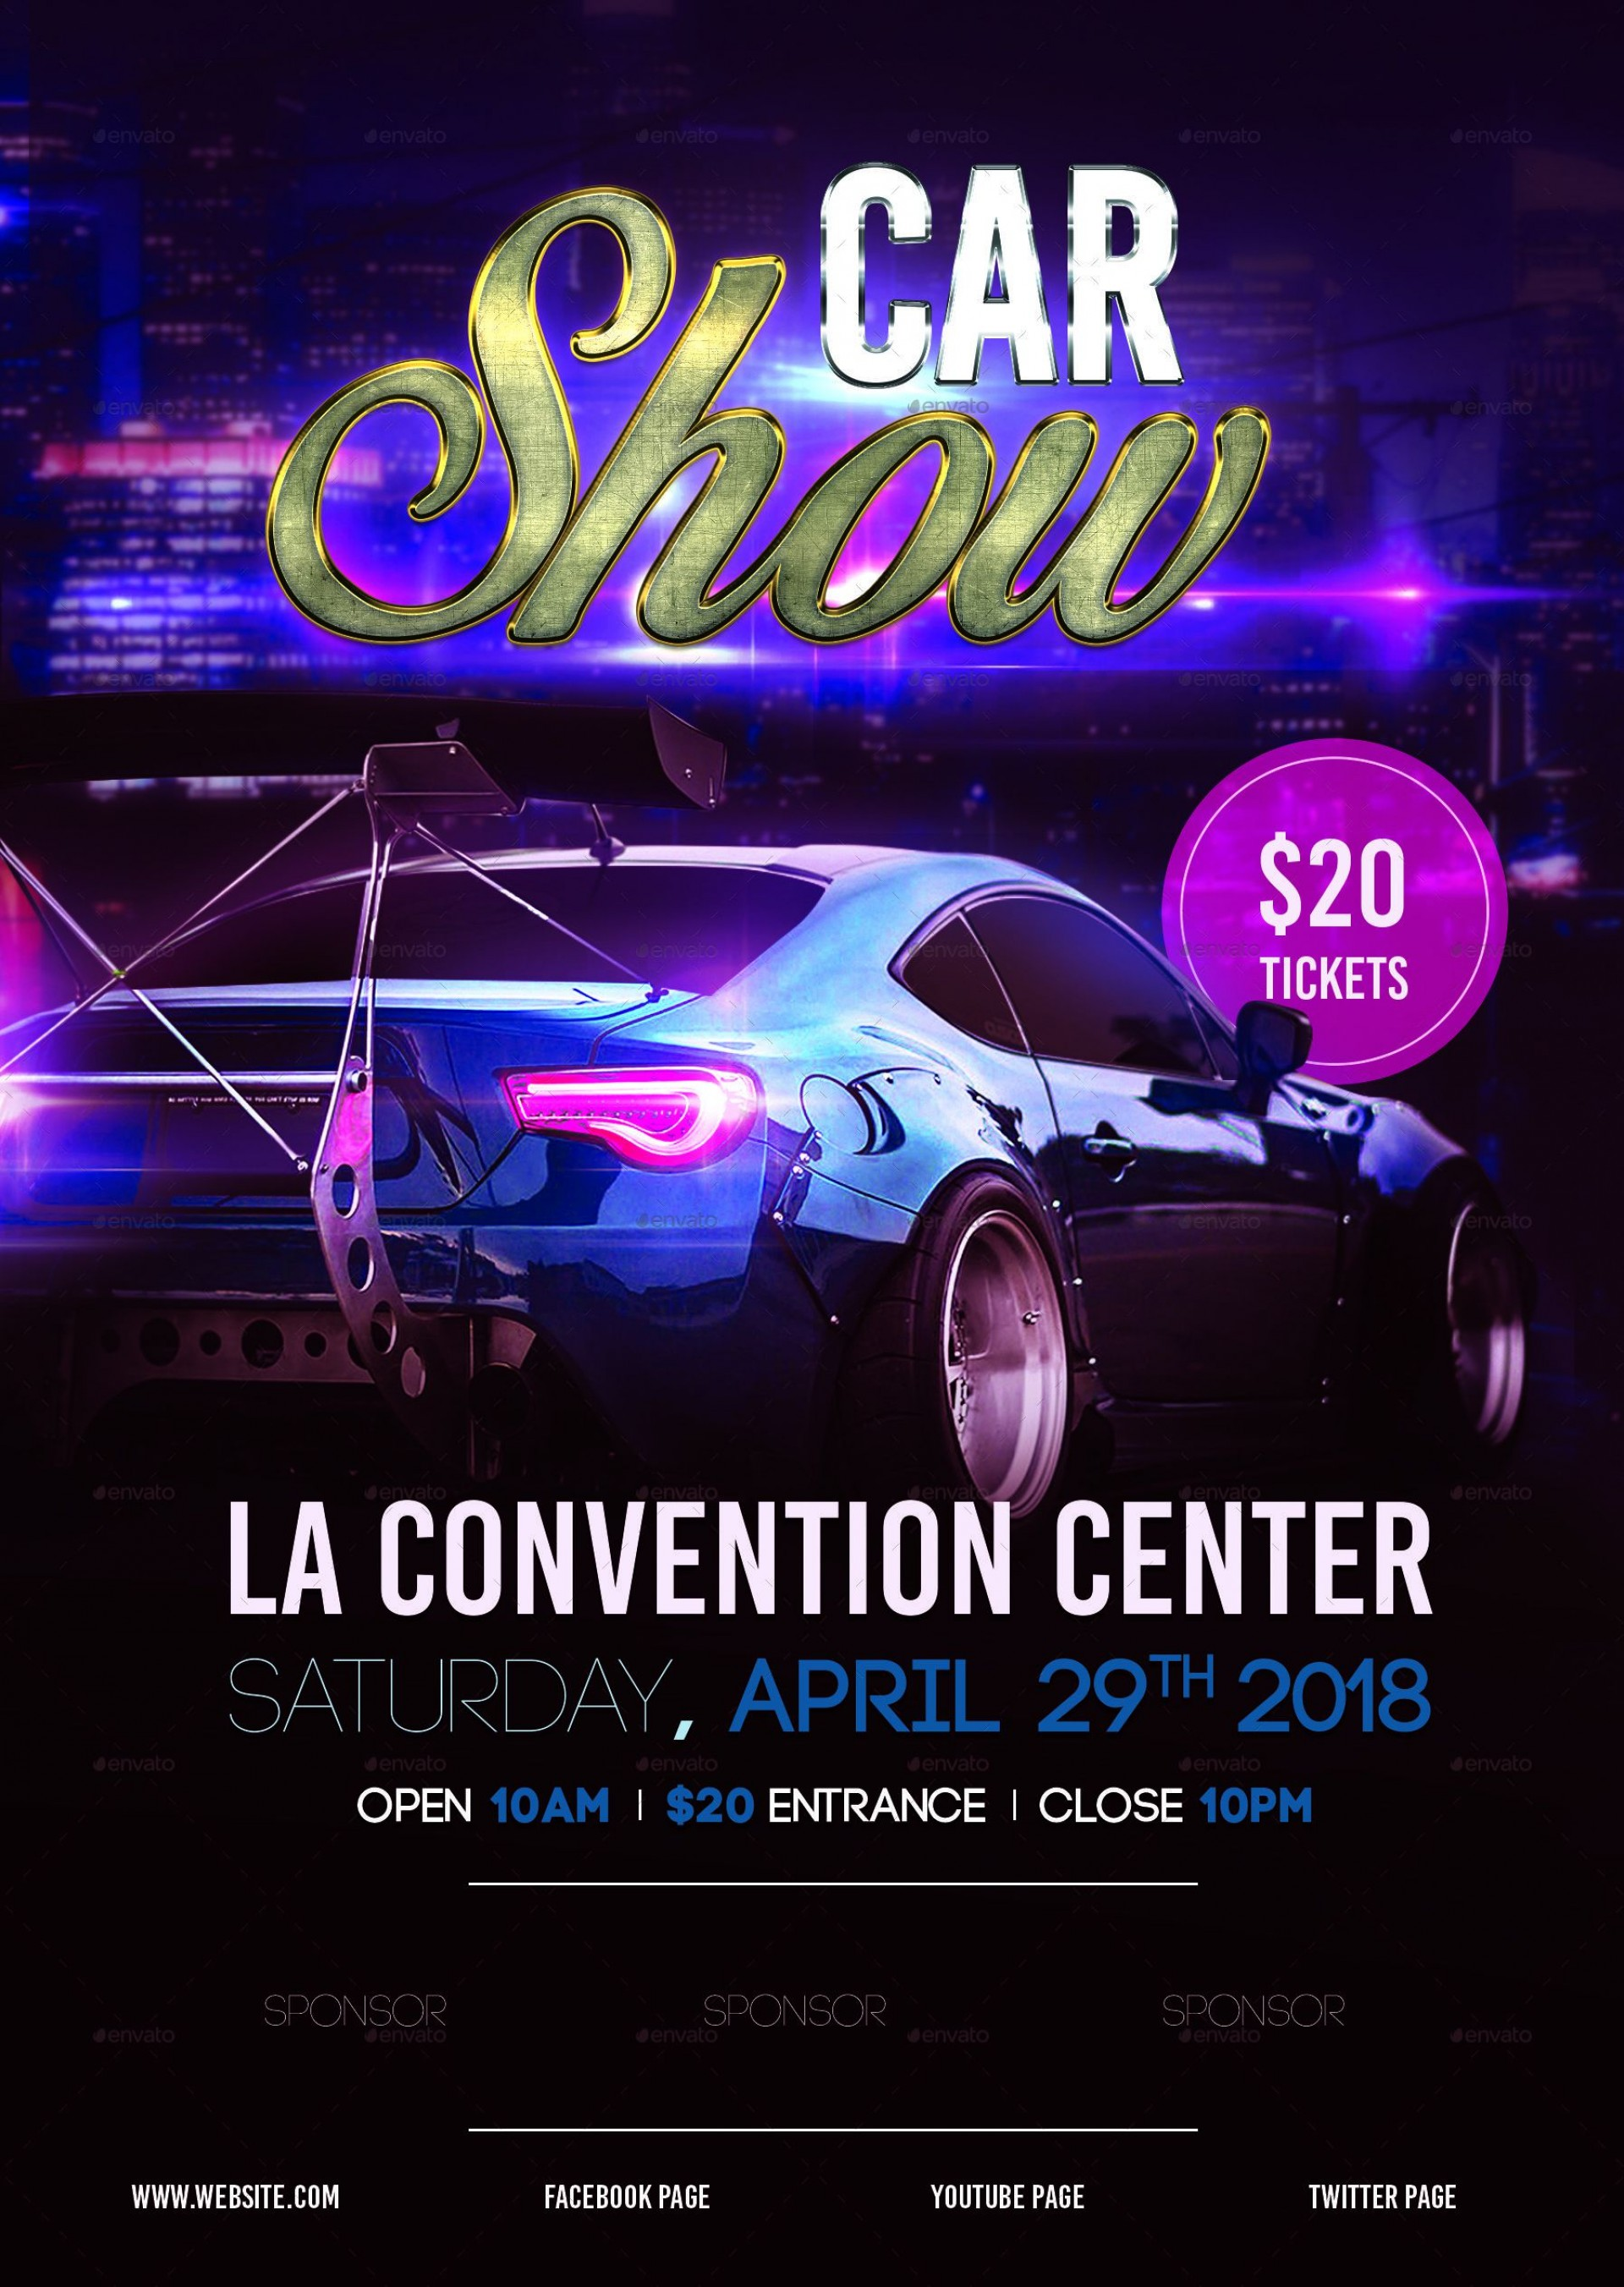 008 Outstanding Free Car Show Flyer Template High Resolution  Psd And Bike1920